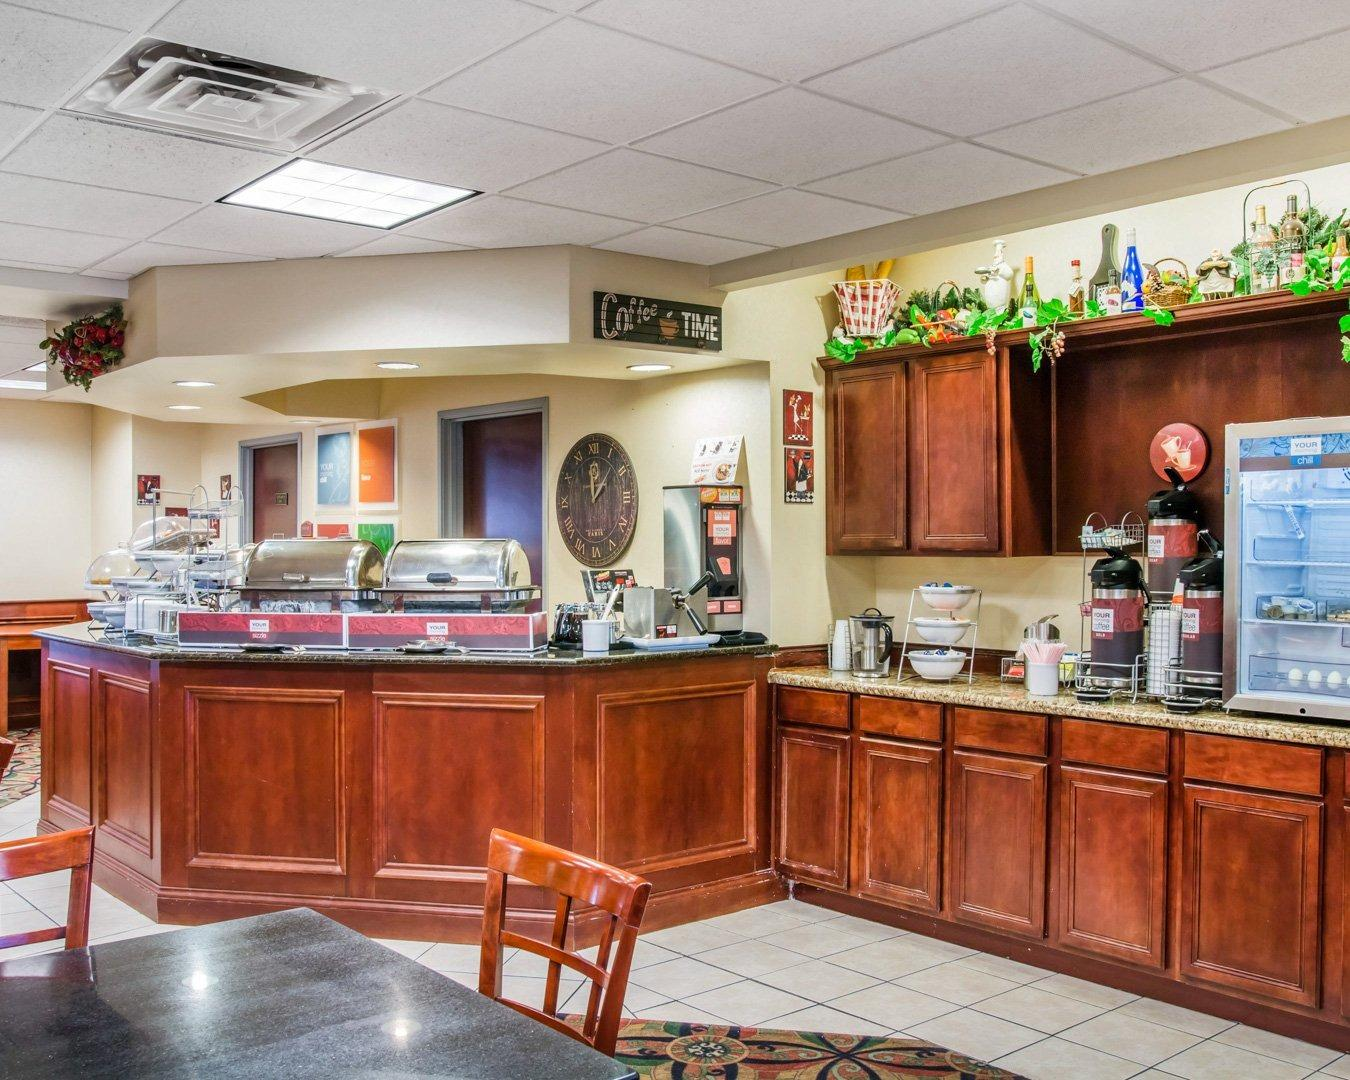 Comfort Suites Coupons Near Me In Findlay 8coupons